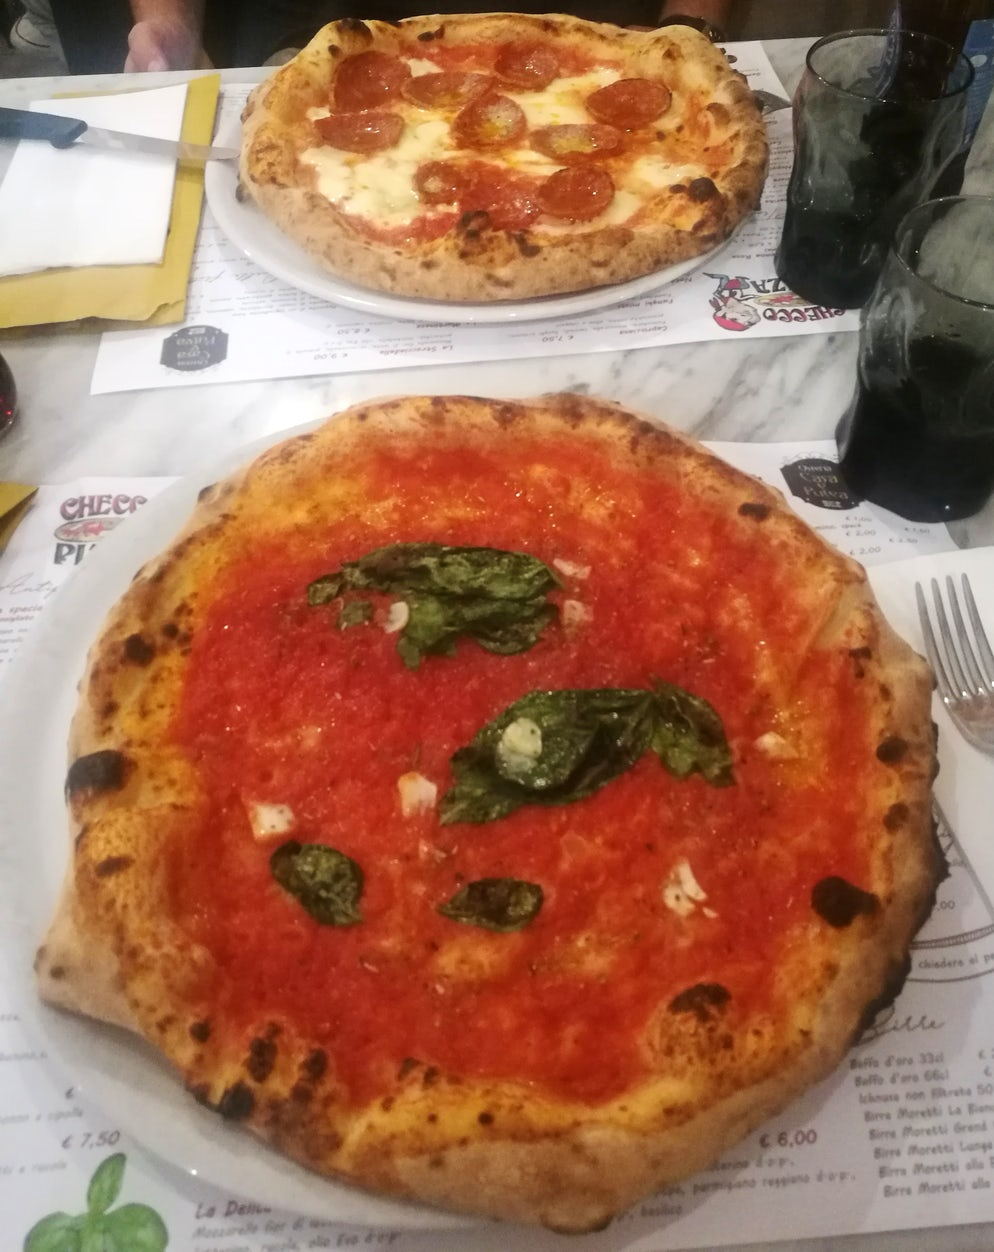 Pizza Marinara and Salame e Zola at Checco Pizza